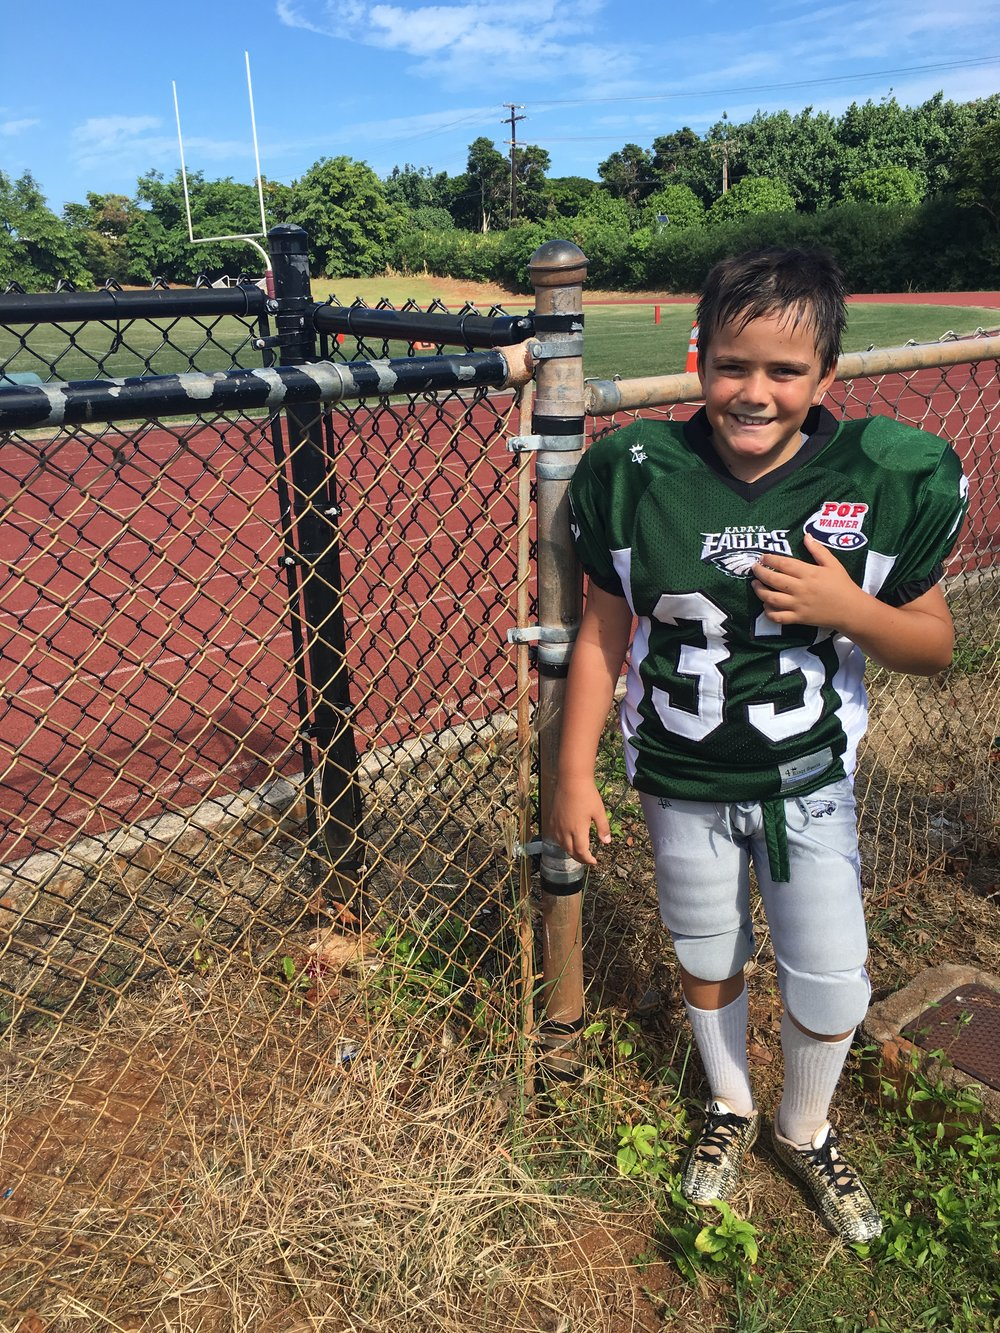 My youngest in Pop Warner Football